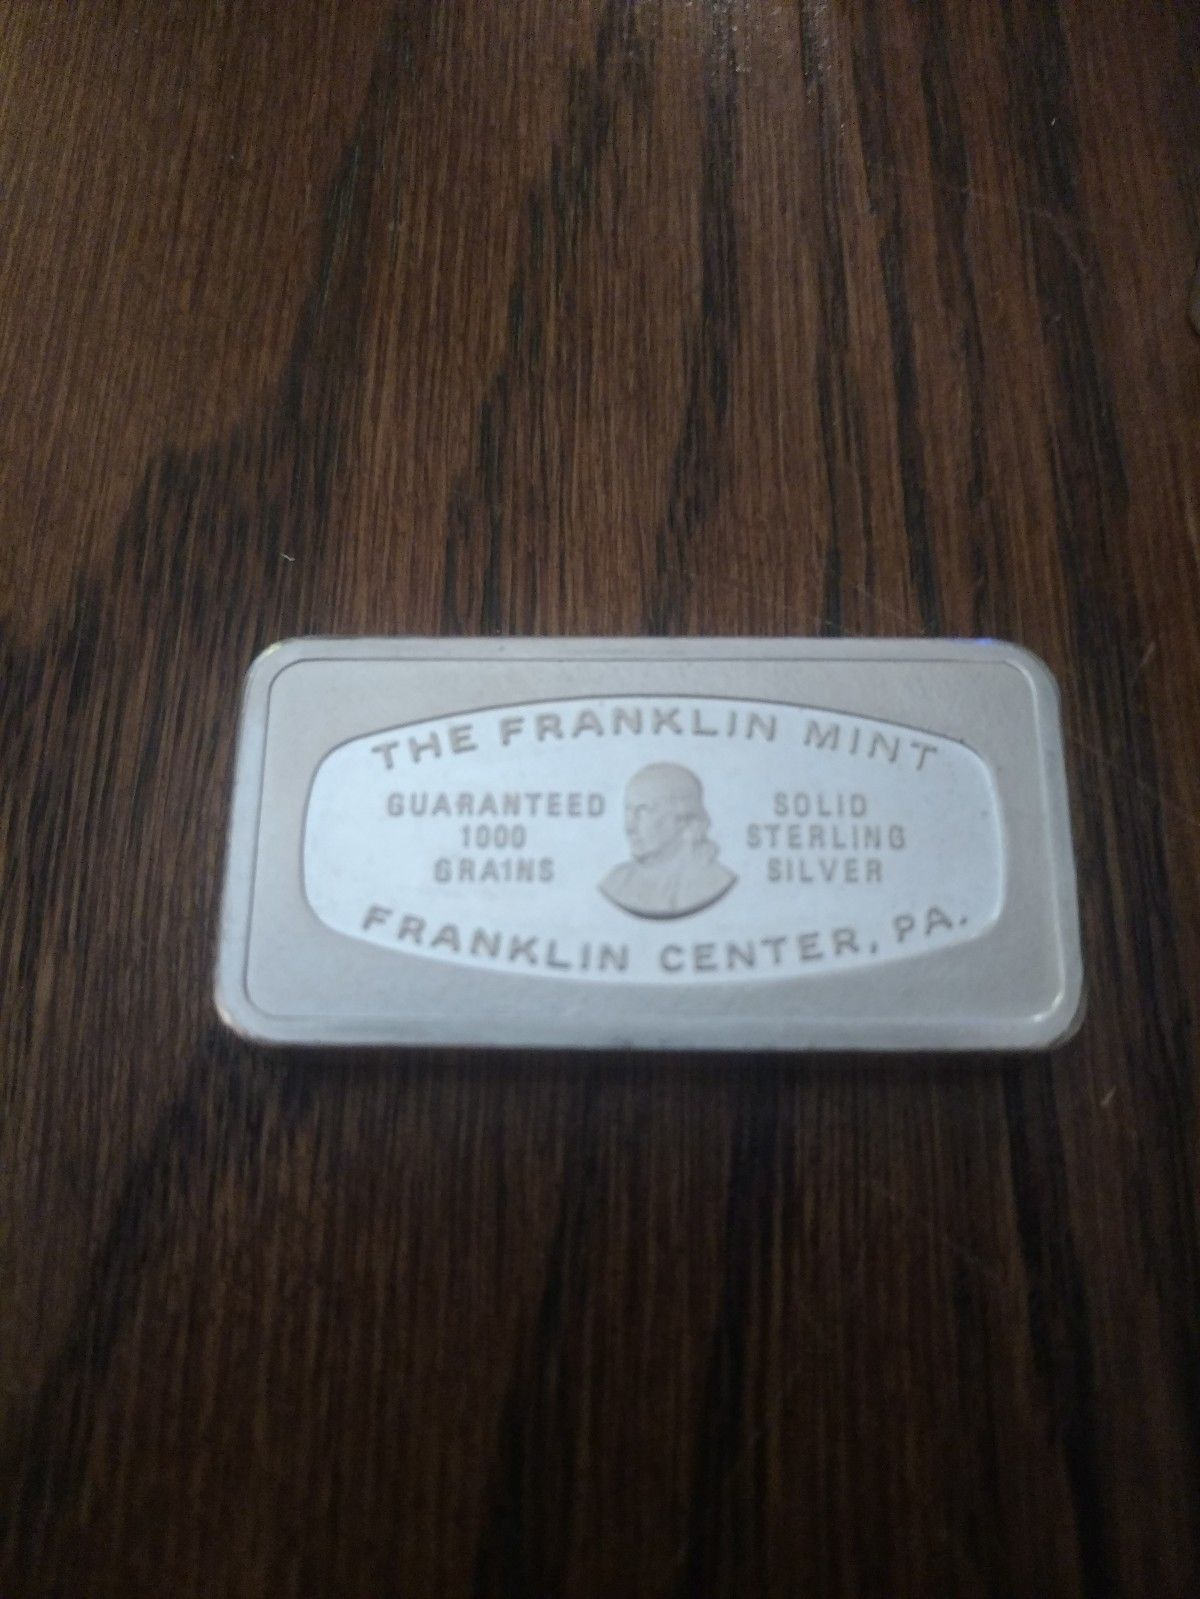 The Franklin Mint Guaranteed 1000 Grains 925 Sterling Silver Bar